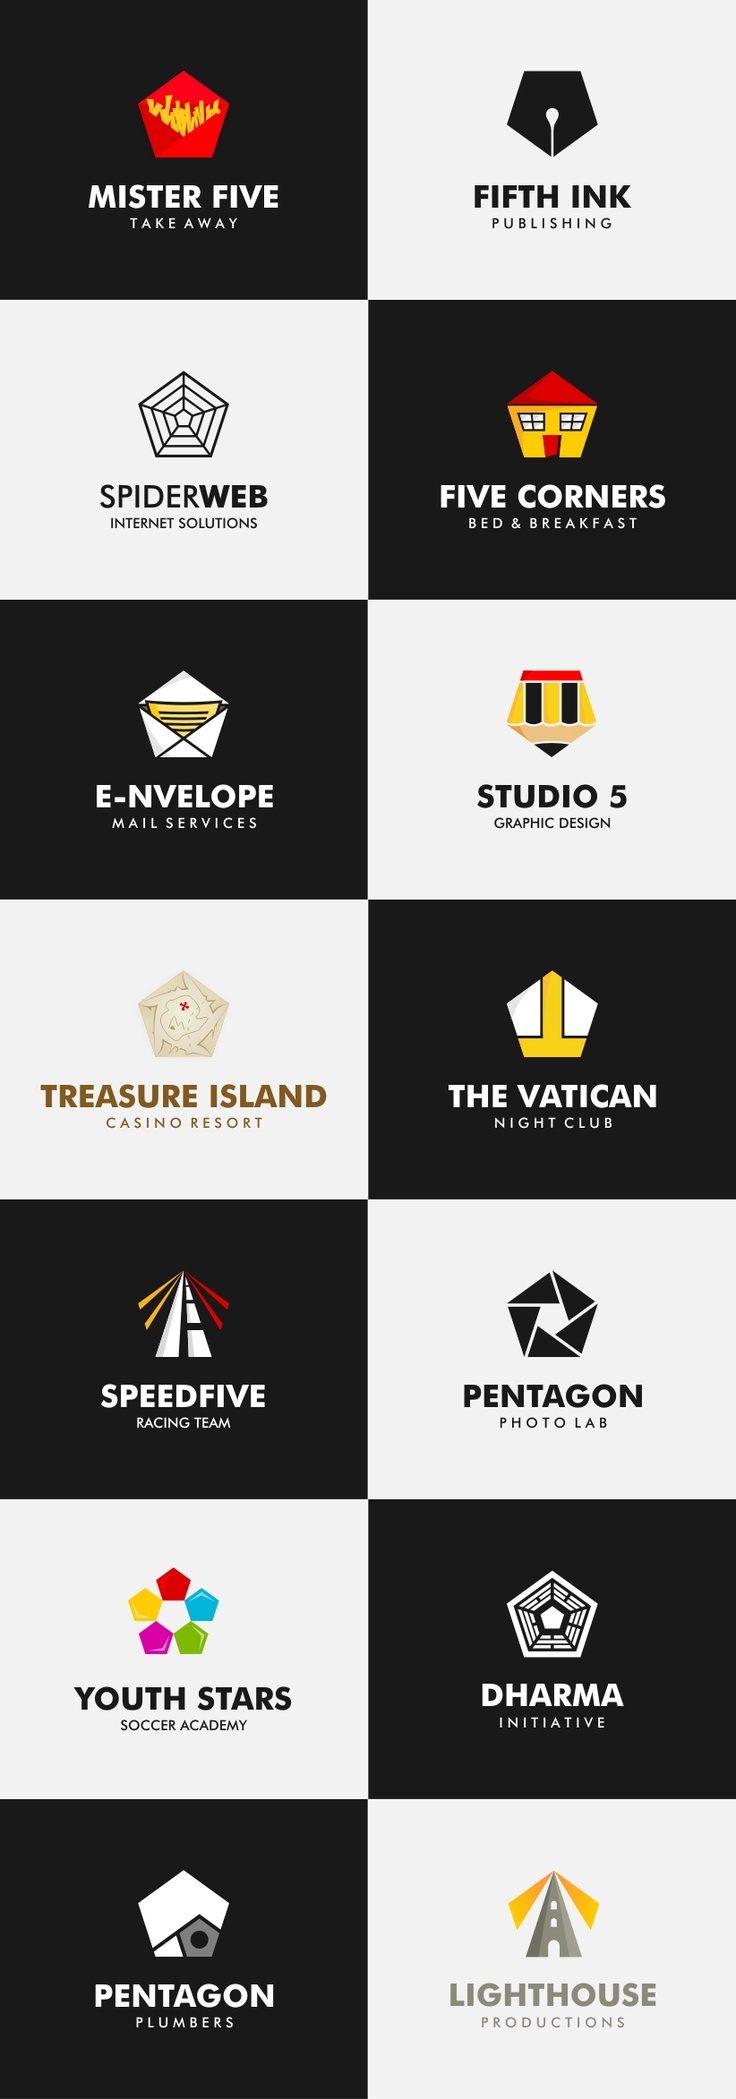 Pentalogon. This is a set of fictional logos based on the shape of a pentagon.